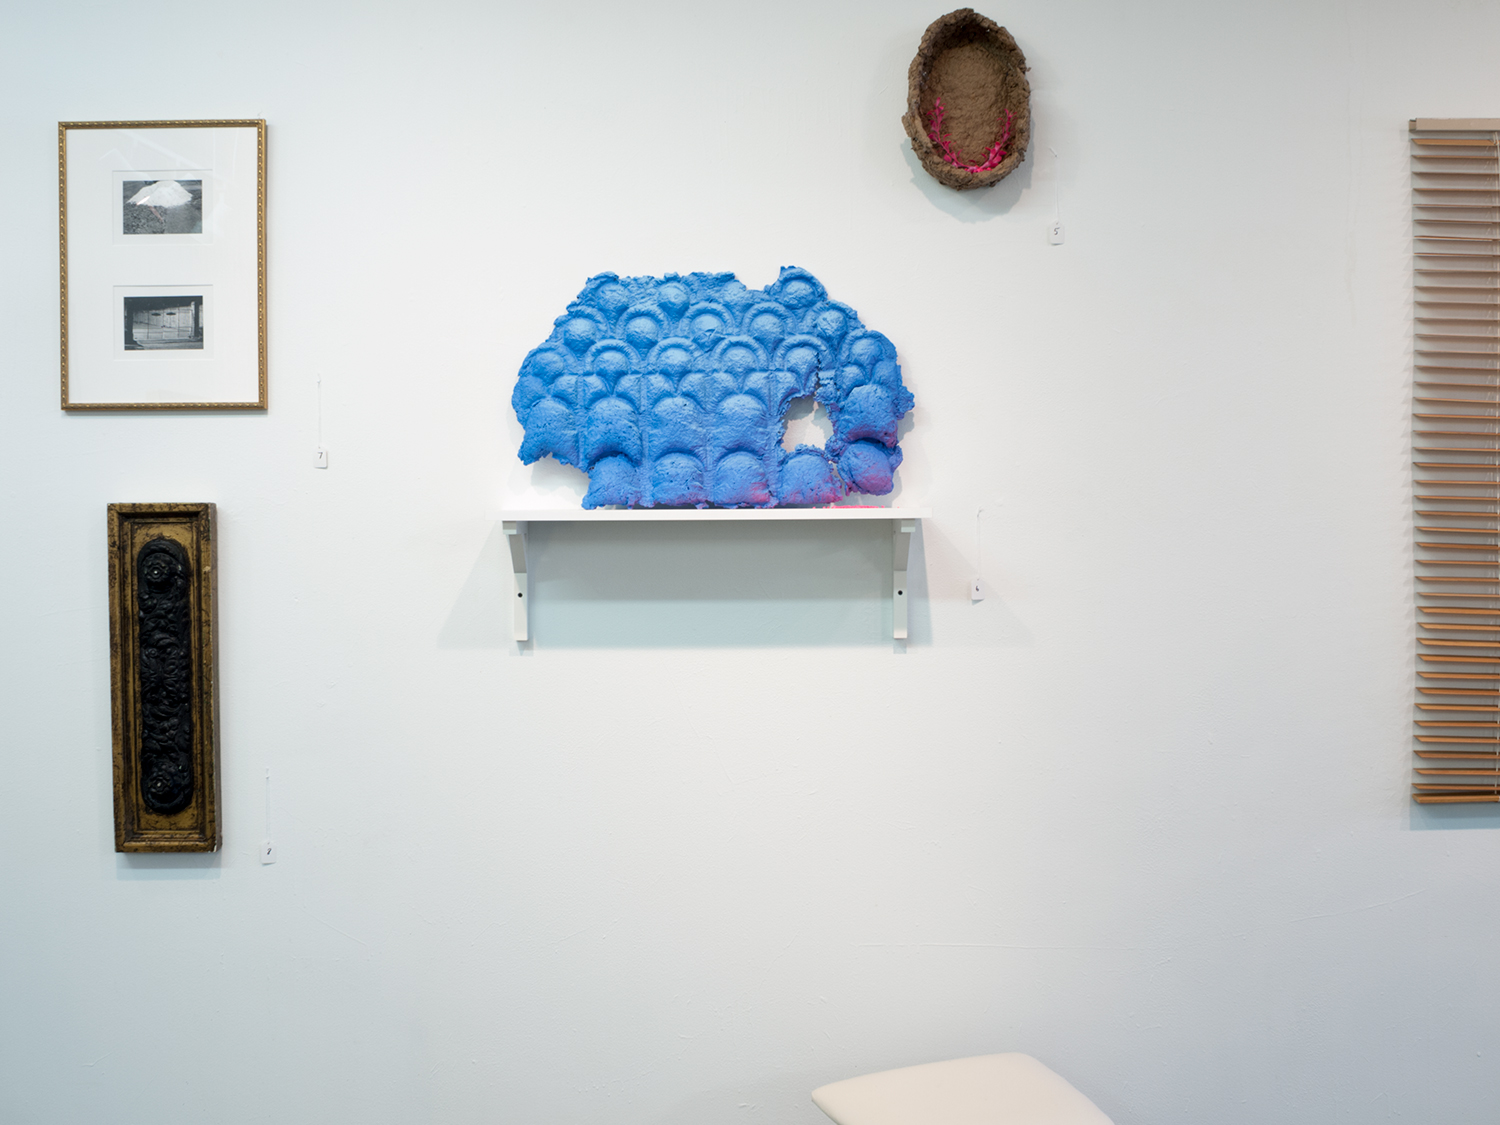 transitional_artifacts-wall-objects02-1500x1125.jpg